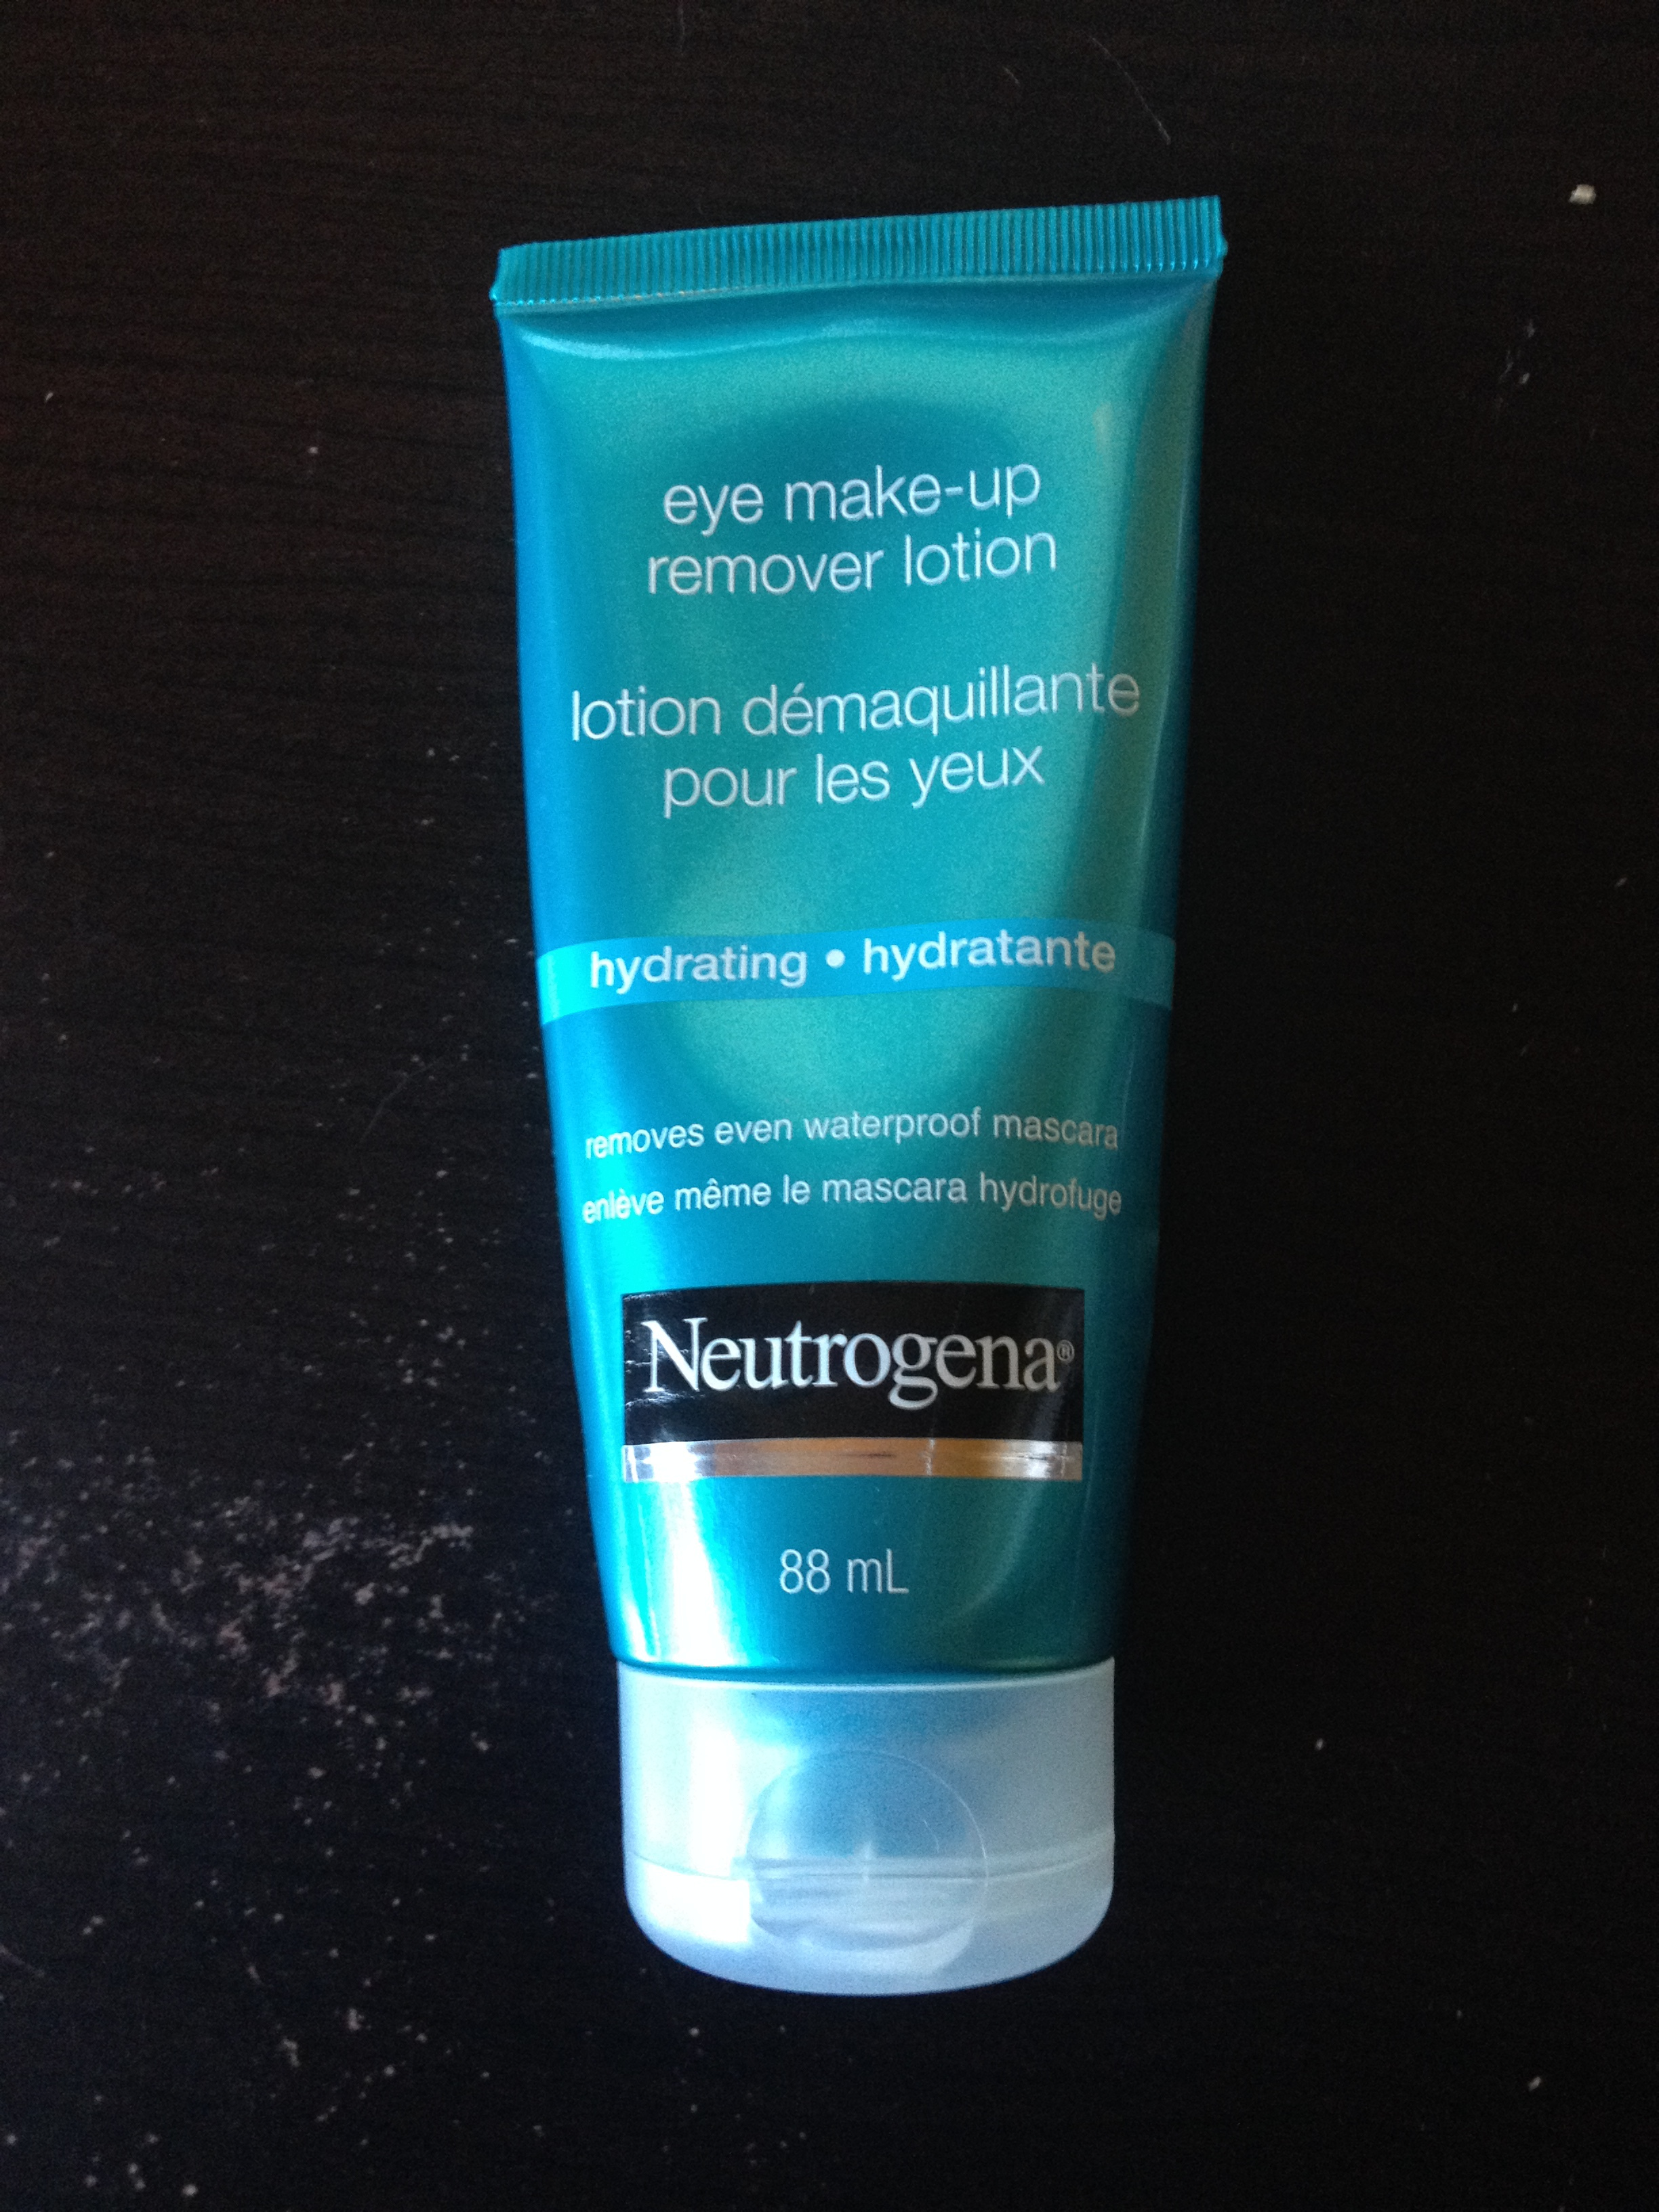 Neutrogena Hydrating Eye Makeup Remover Lotion Reviews In Makeup Removers - ChickAdvisor